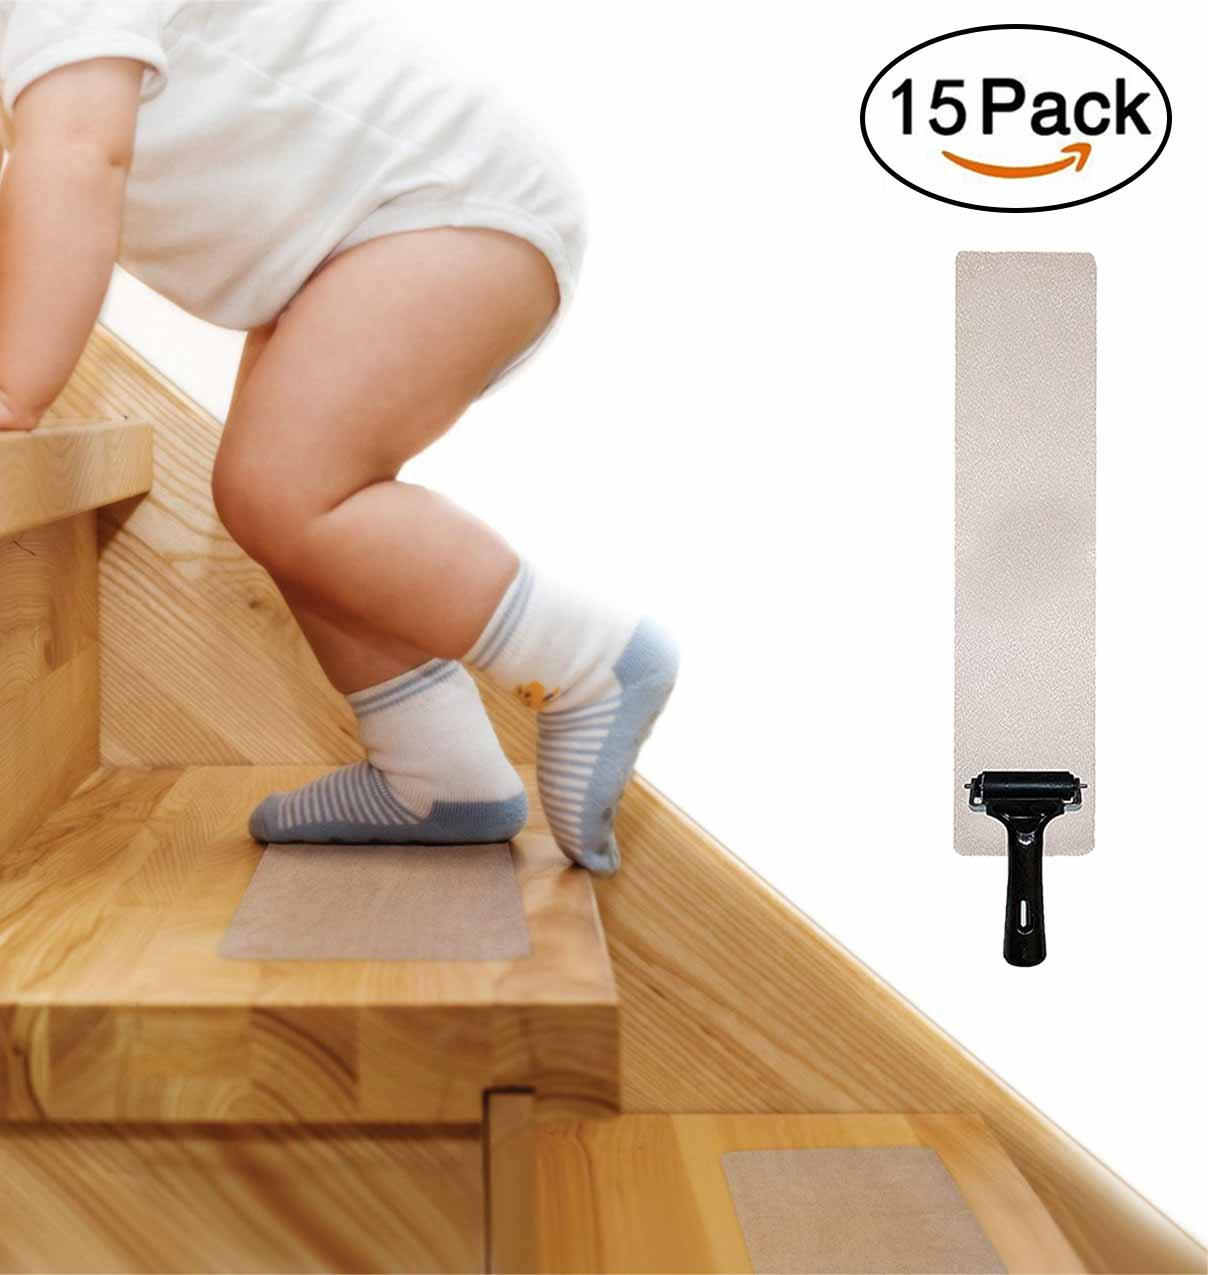 15-PACK Pre Cut Transparent 24''x4'' Anti Slip Clear Tape, Family Safety For Kids, Elders And Pets, Adhesive Stair Treads, Indoor, Outdoor, Prevents Slipping, Easy Installation KIT, PVC-FREE